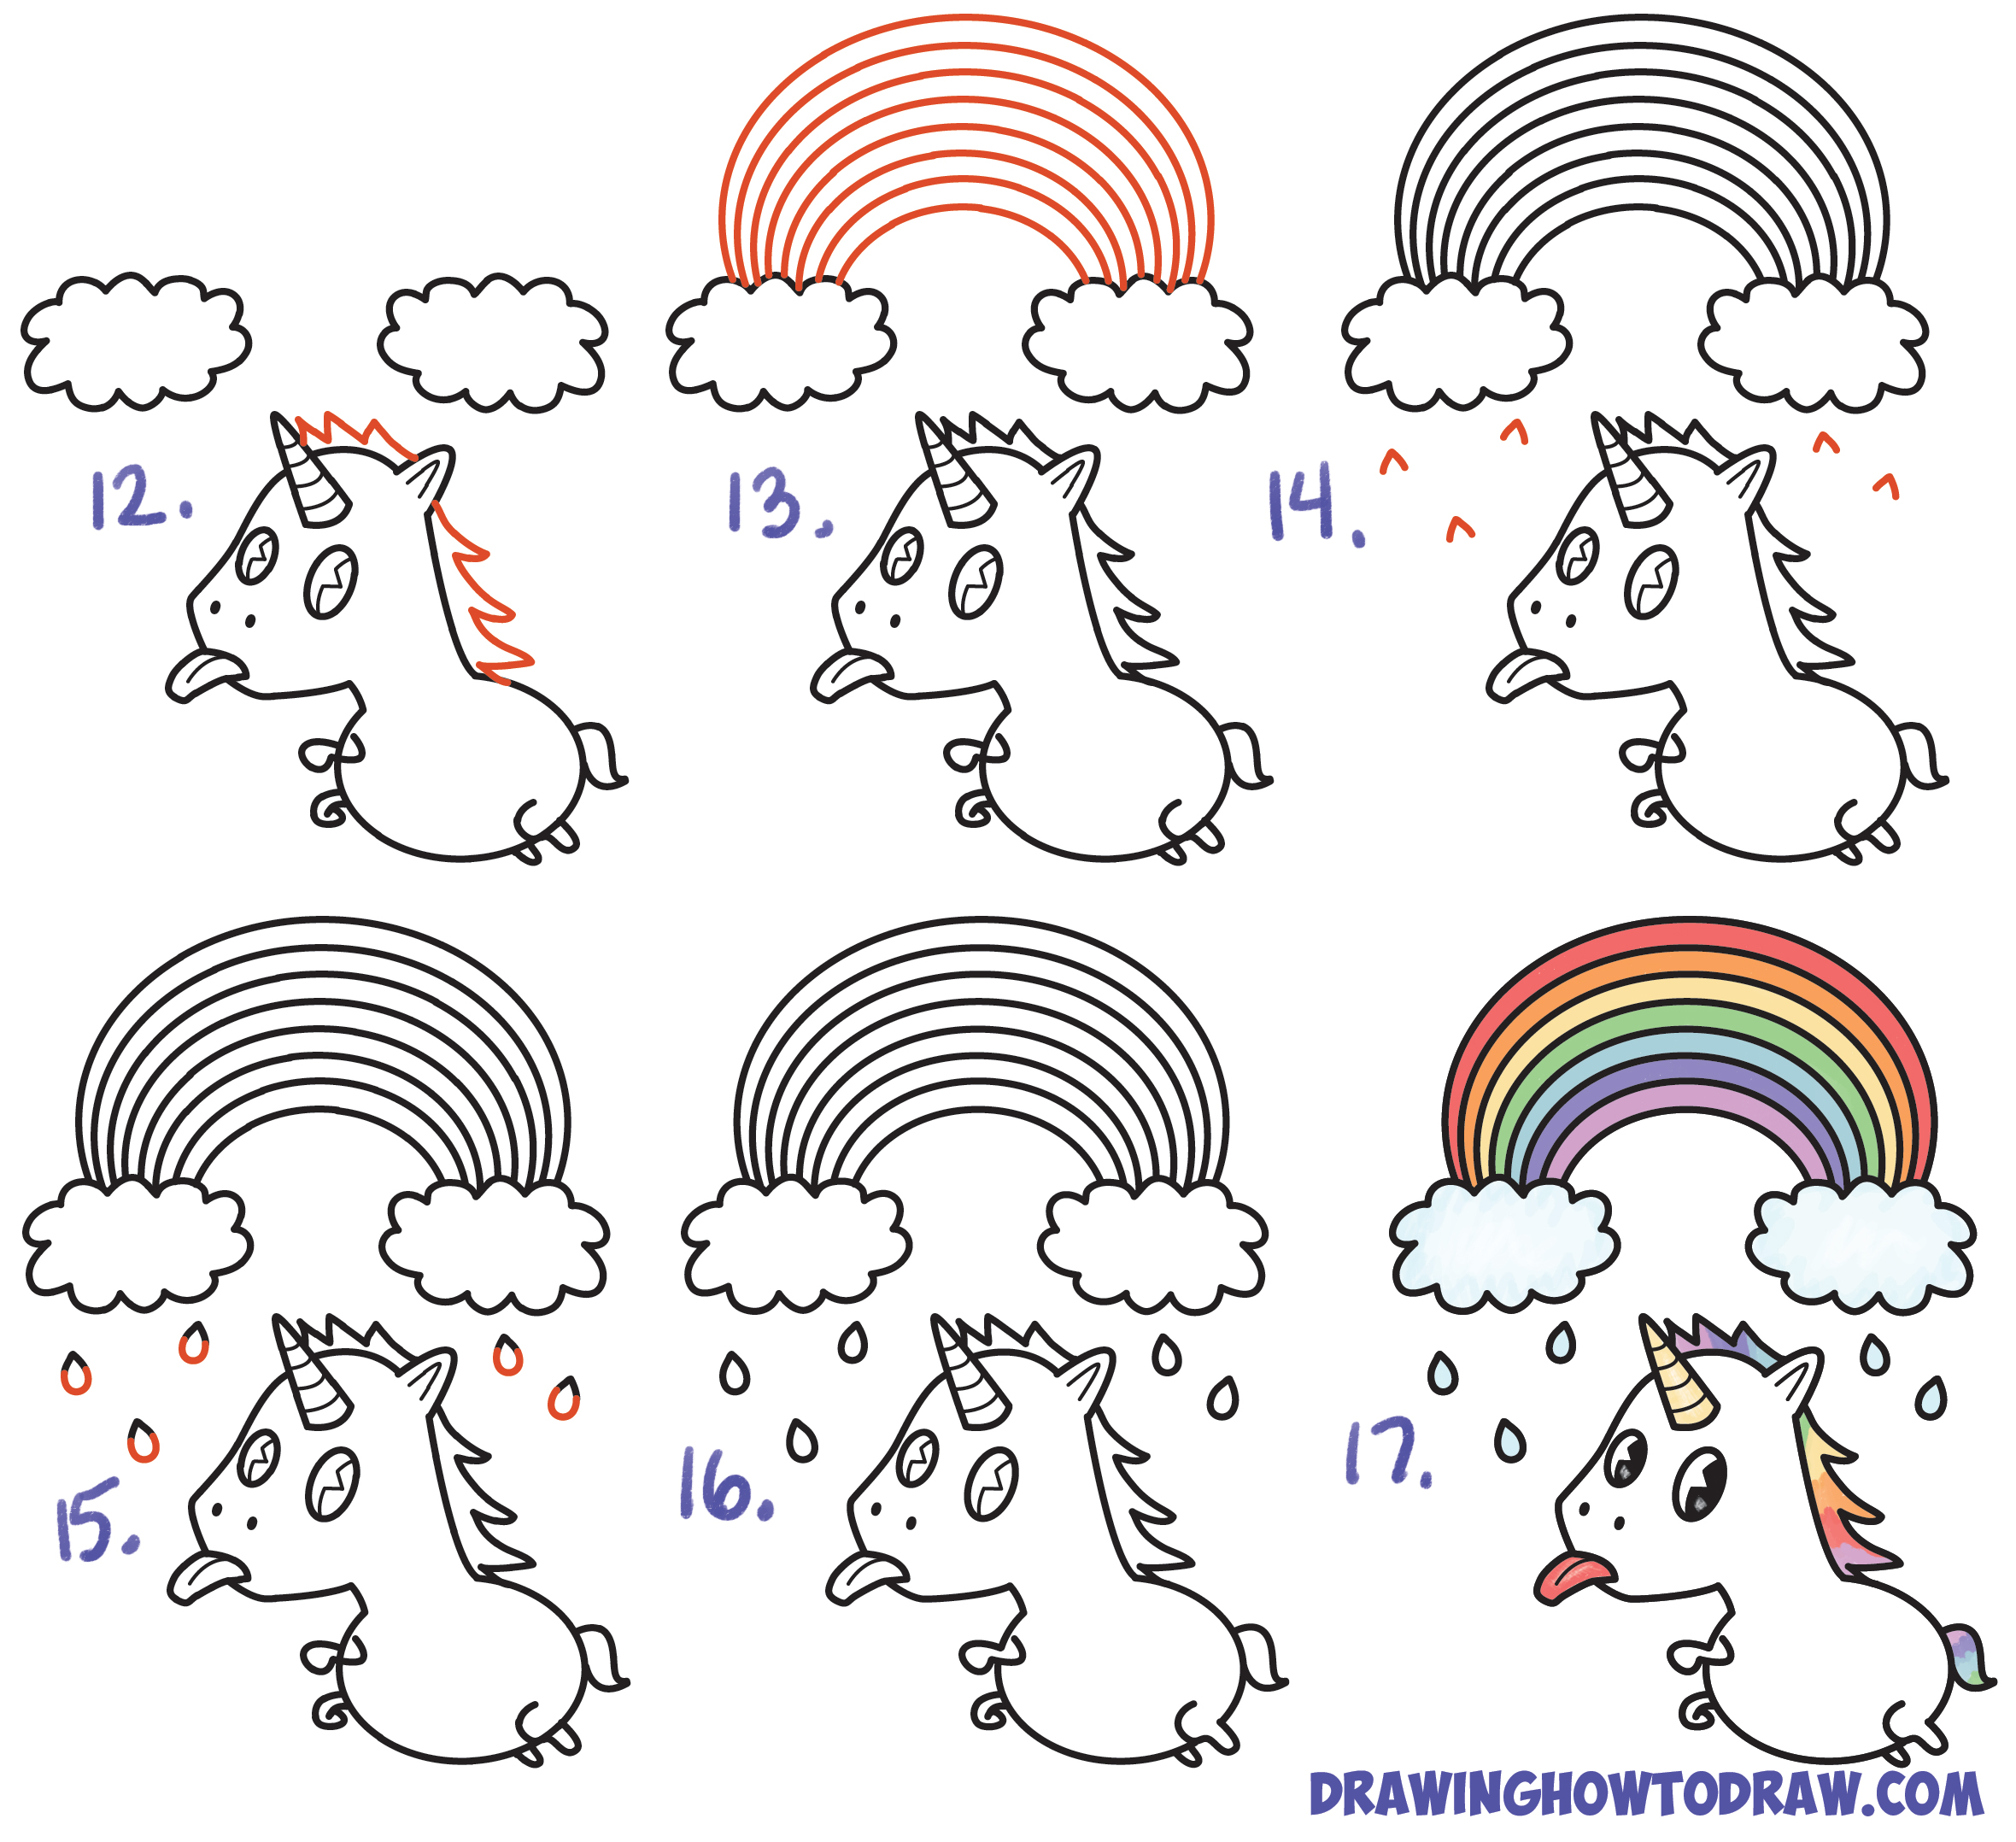 Learn How to Draw a Cute Chibi / Kawaii Unicorn with Tongue Out Under Rainbow Simple Steps Drawing Lesson for Children